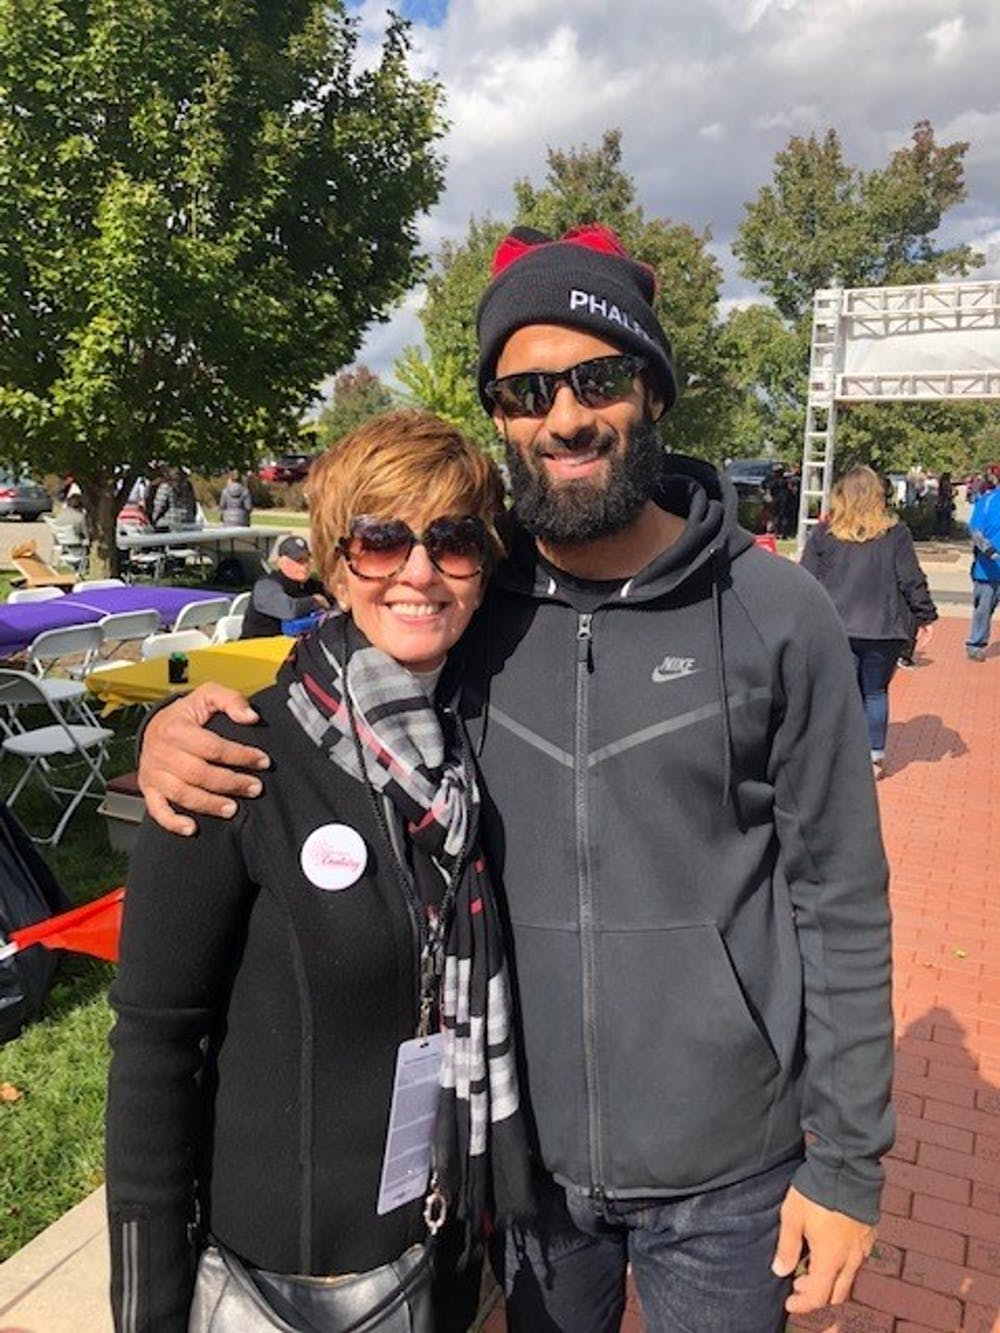 <p>: Renae Conley, chair for the Ball State Board of Trustees, takes a photo with her son Ali Conley. Renae also currently serves as CEO of ER Sollutions LLC. <strong>Ball State University, Photo Provided</strong></p>